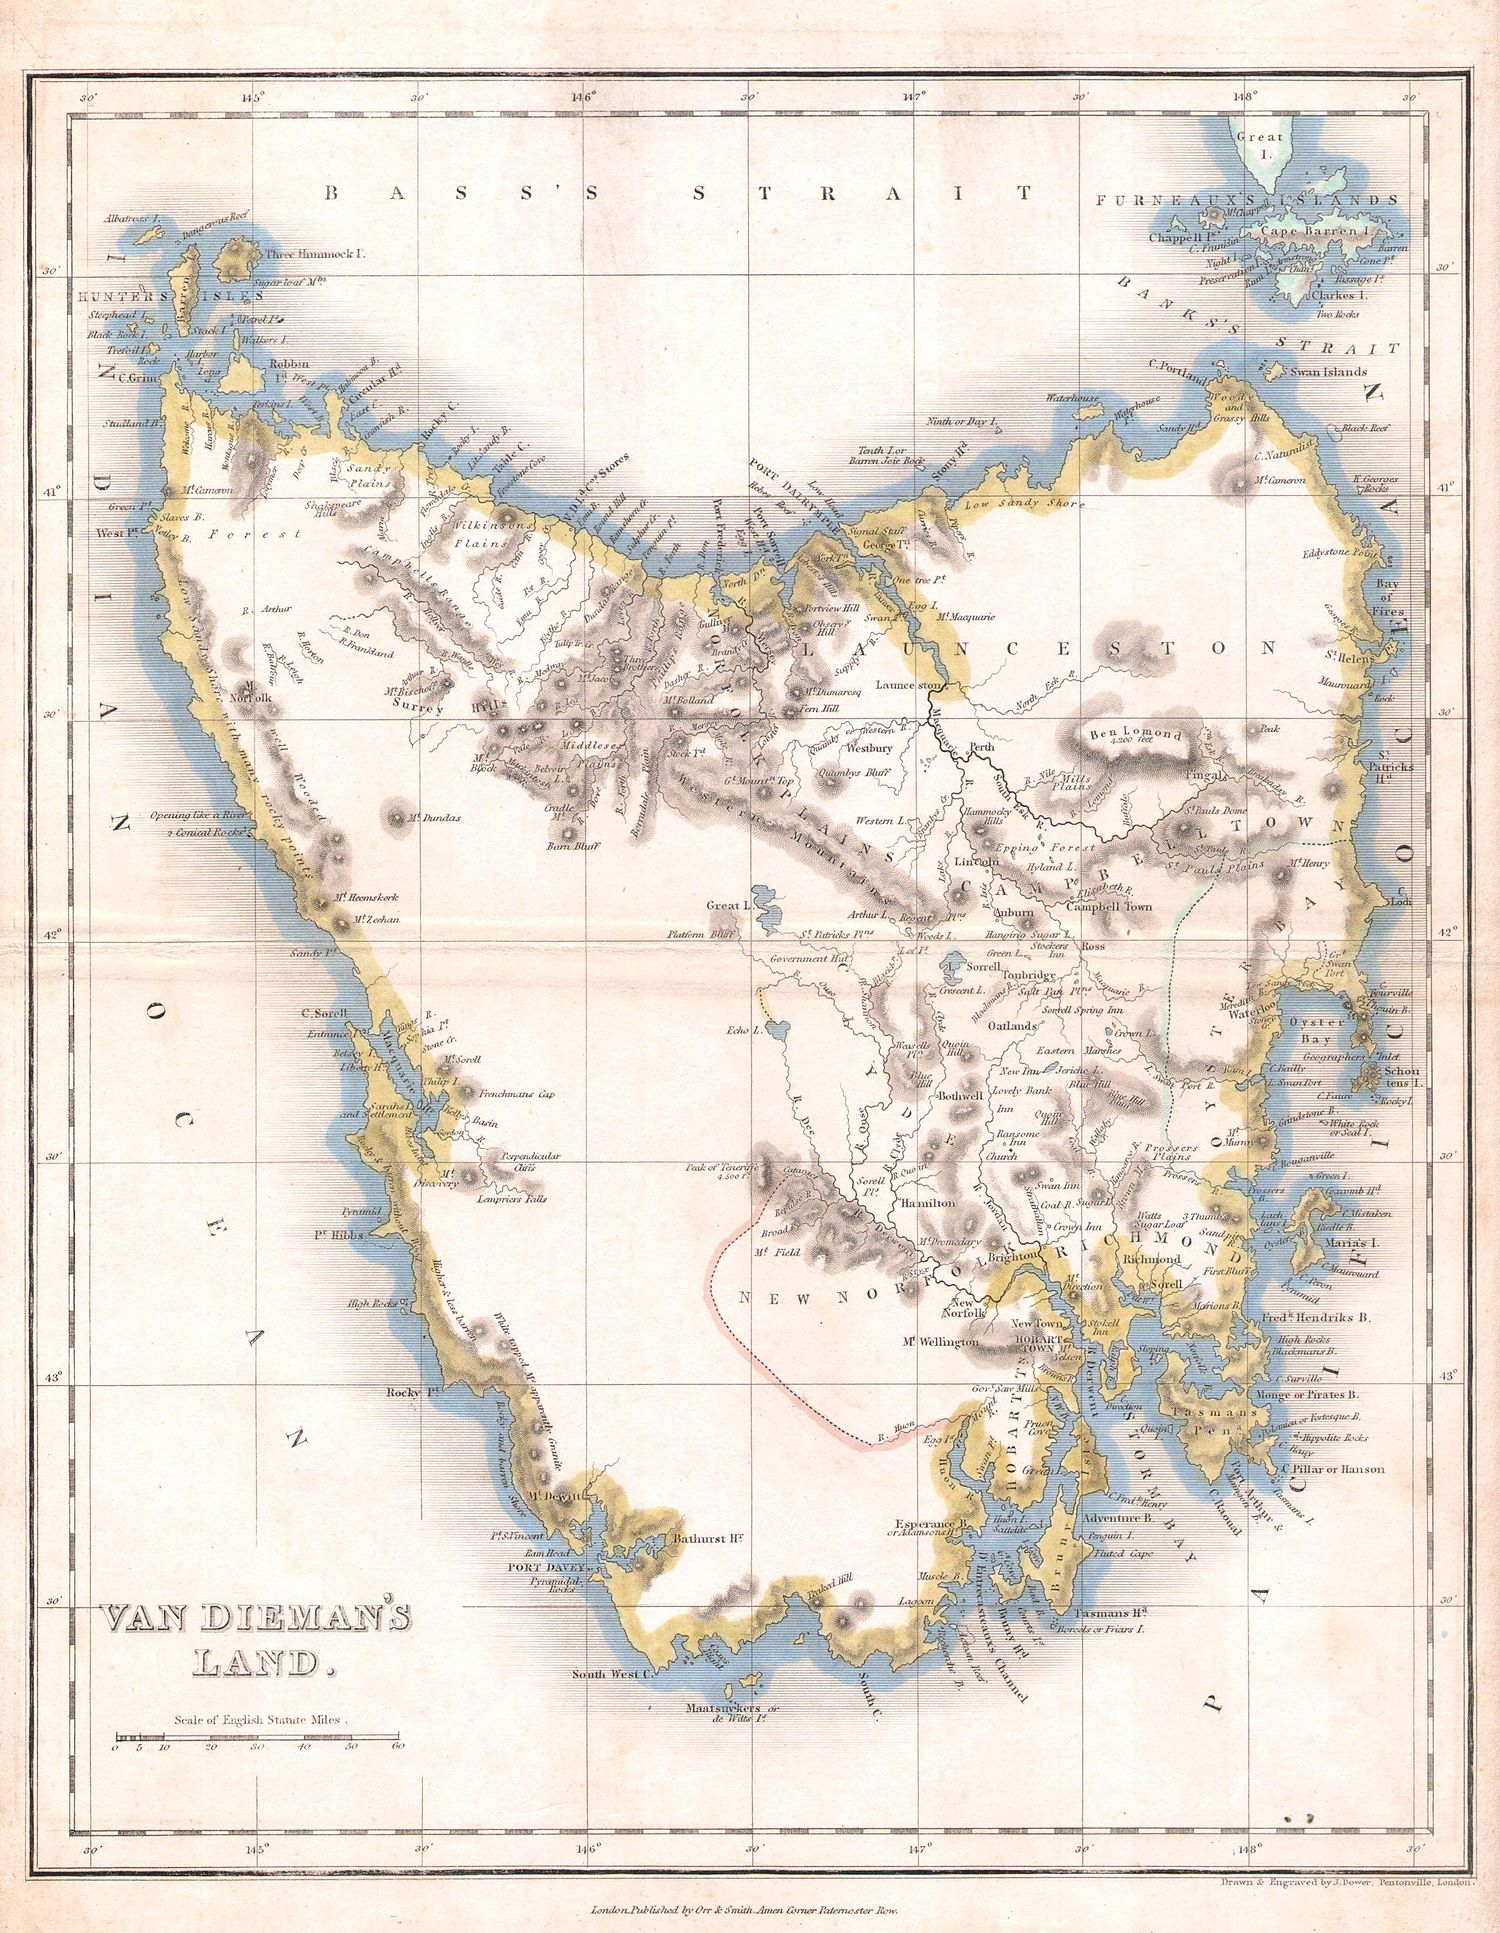 1837 Dower Map of Van Dieman's Land or Tasmania - Geographicus - Tazmania-dower-1837.jpg